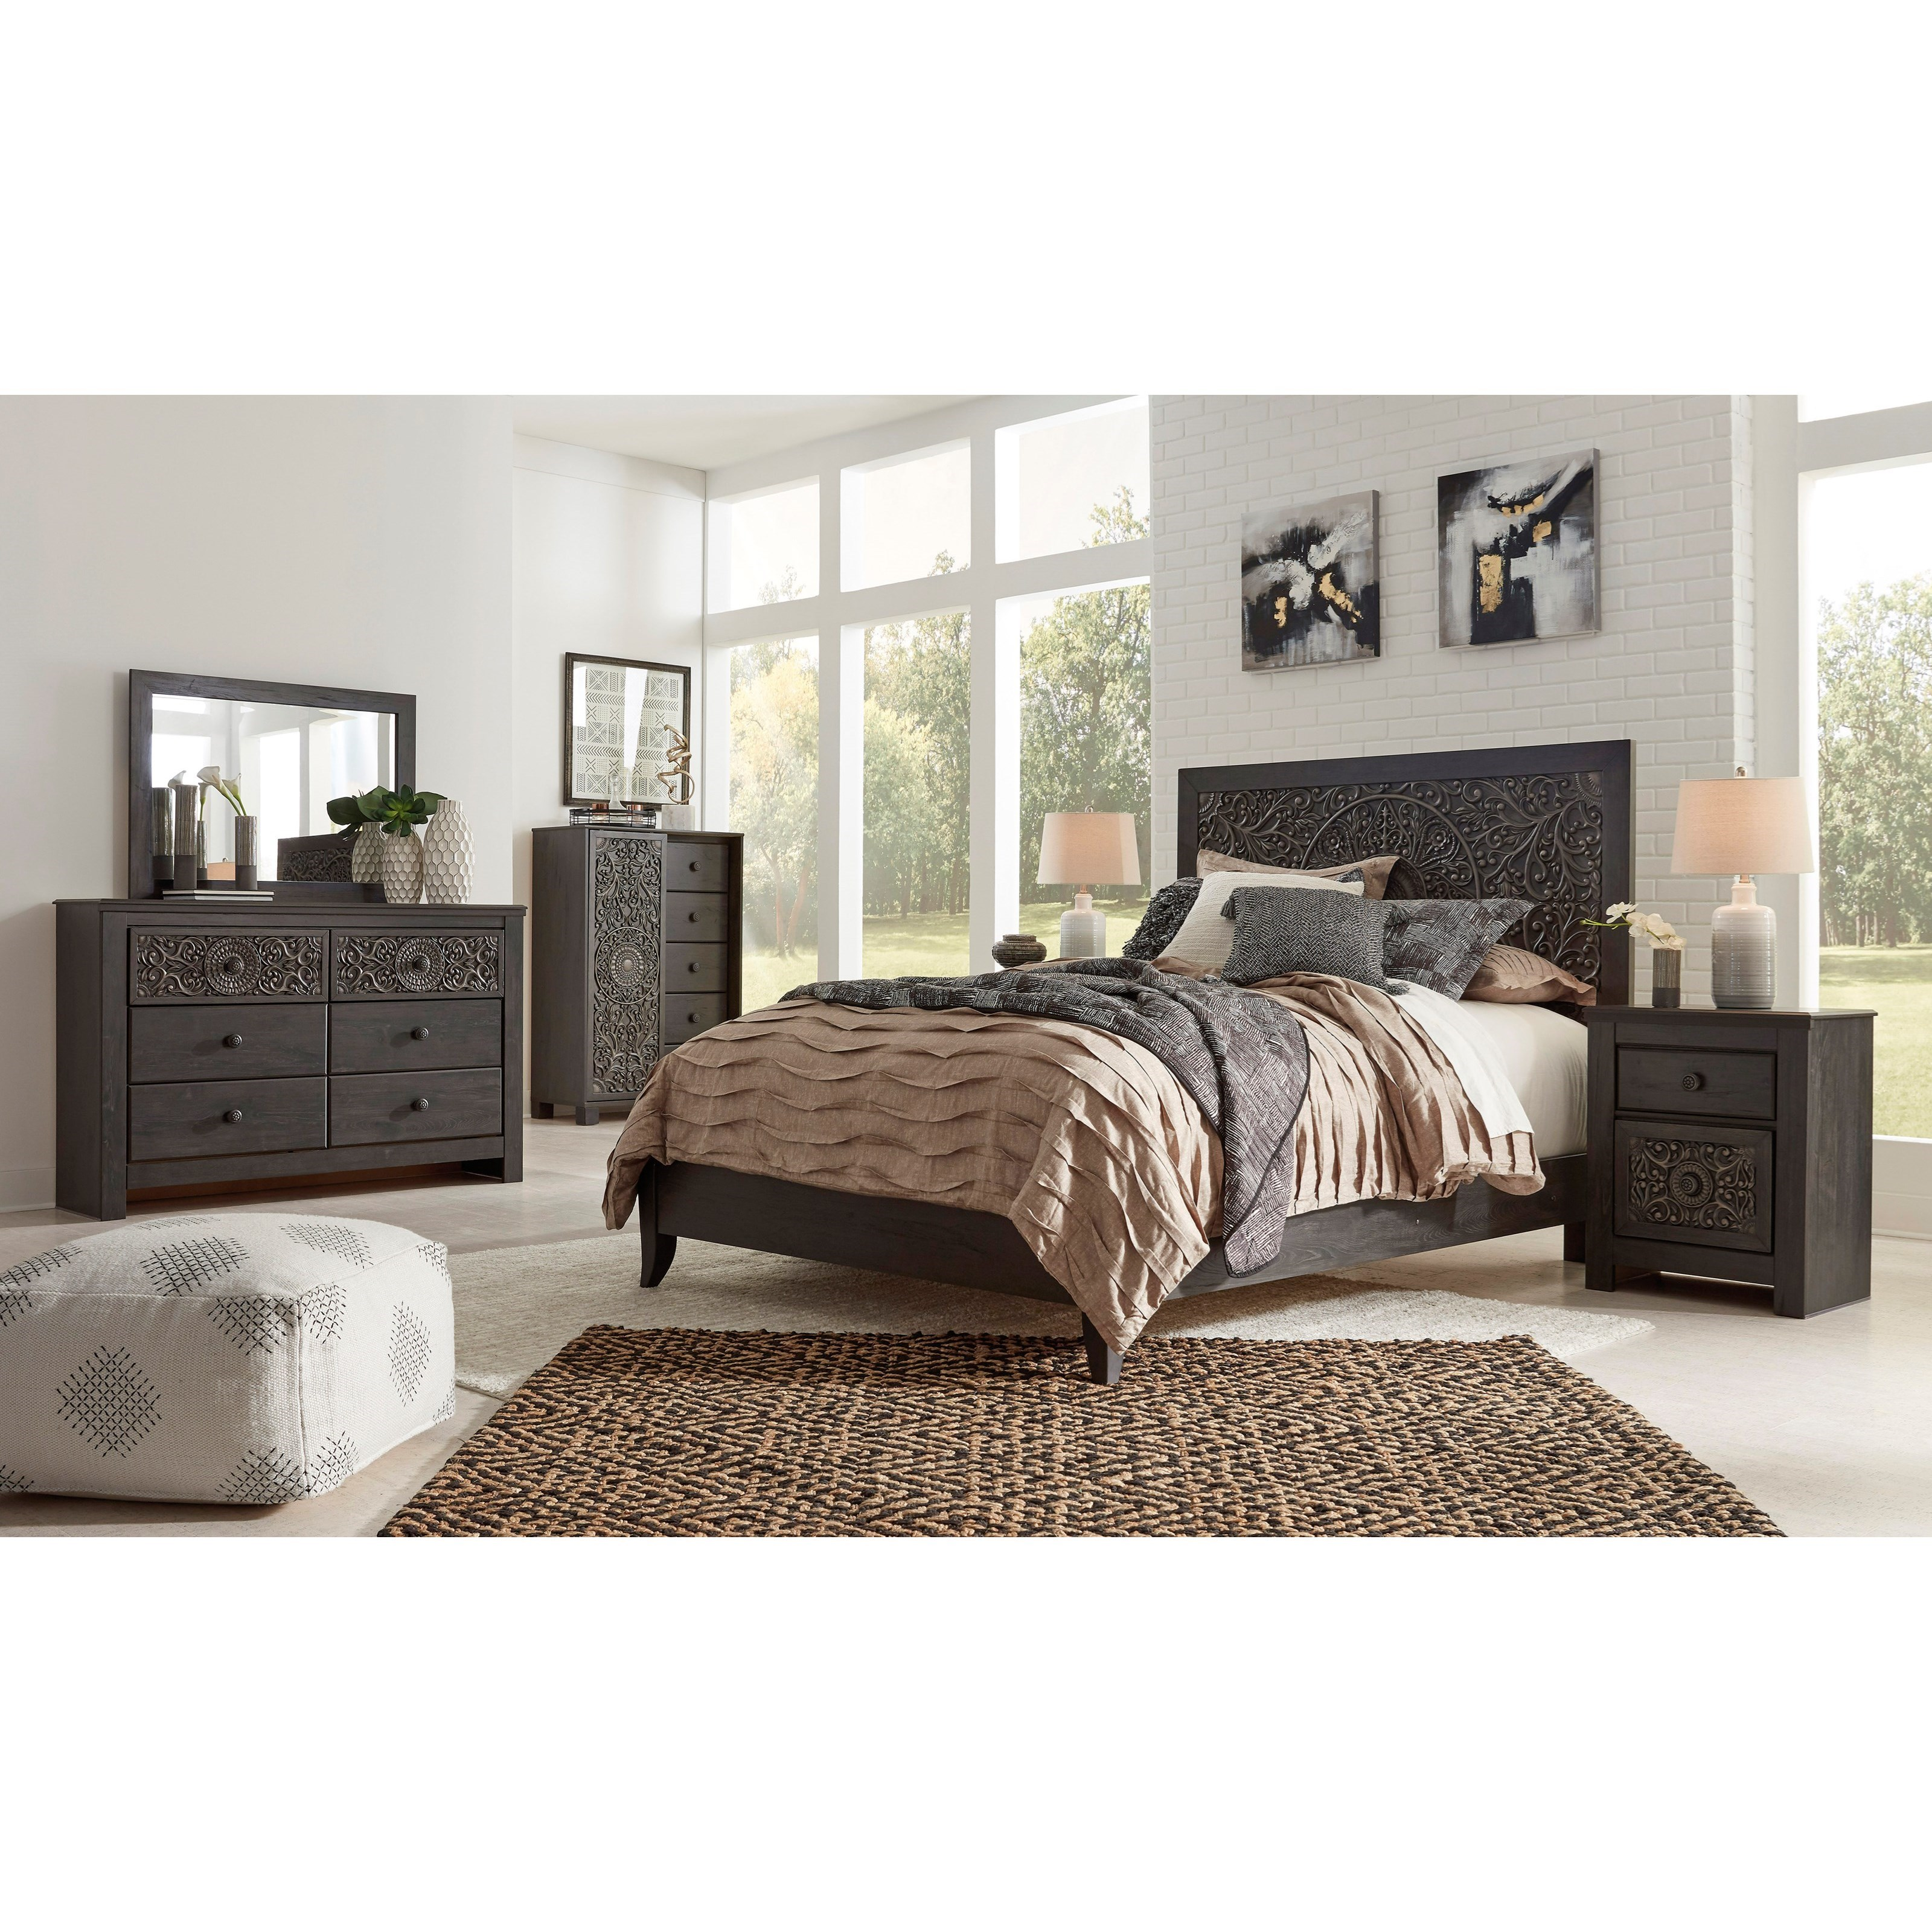 Paxberry Queen Bedroom Group by Signature Design by Ashley at Zak's Warehouse Clearance Center